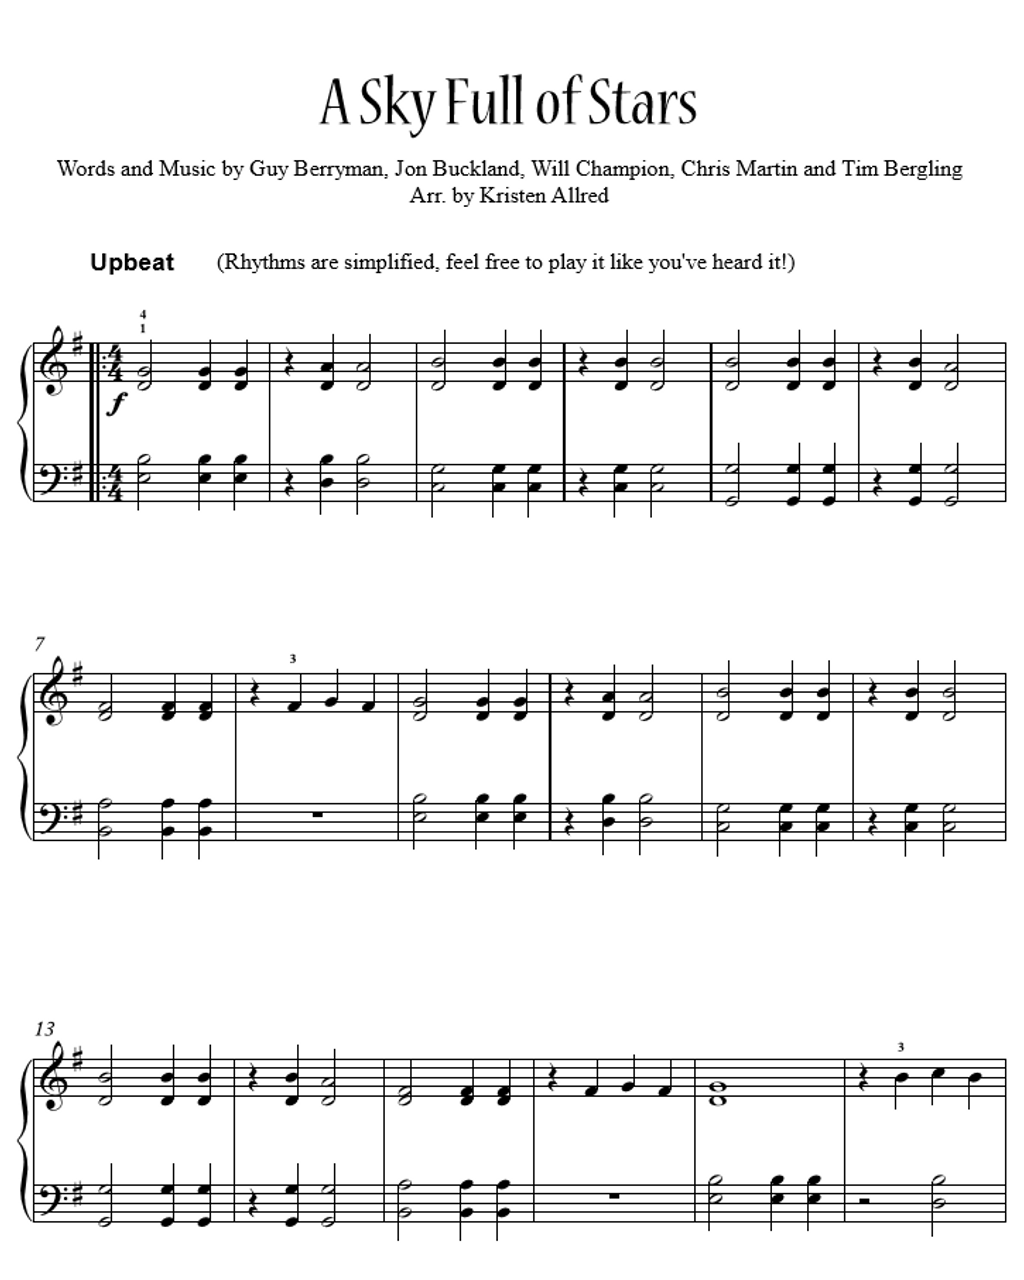 Piano piano sheet music stay rihanna : A Sky Full Of Stars by Coldplay - Easy Piano Sheet Music Download